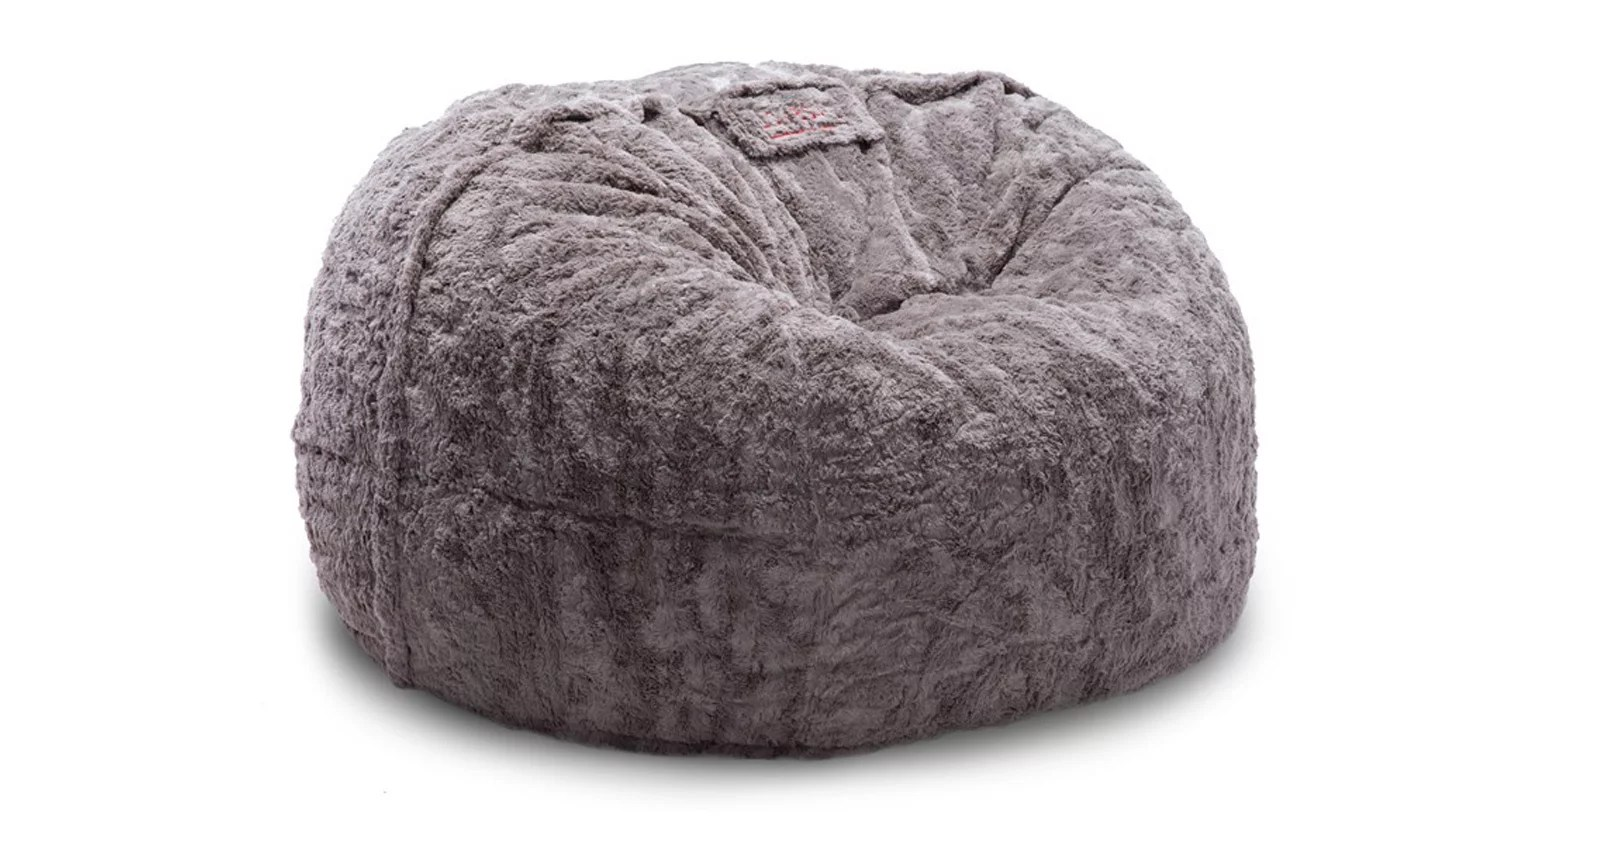 Love Sac Bean Bag Chair The Bigone Bean Bag From Lovesac Popsugar Family